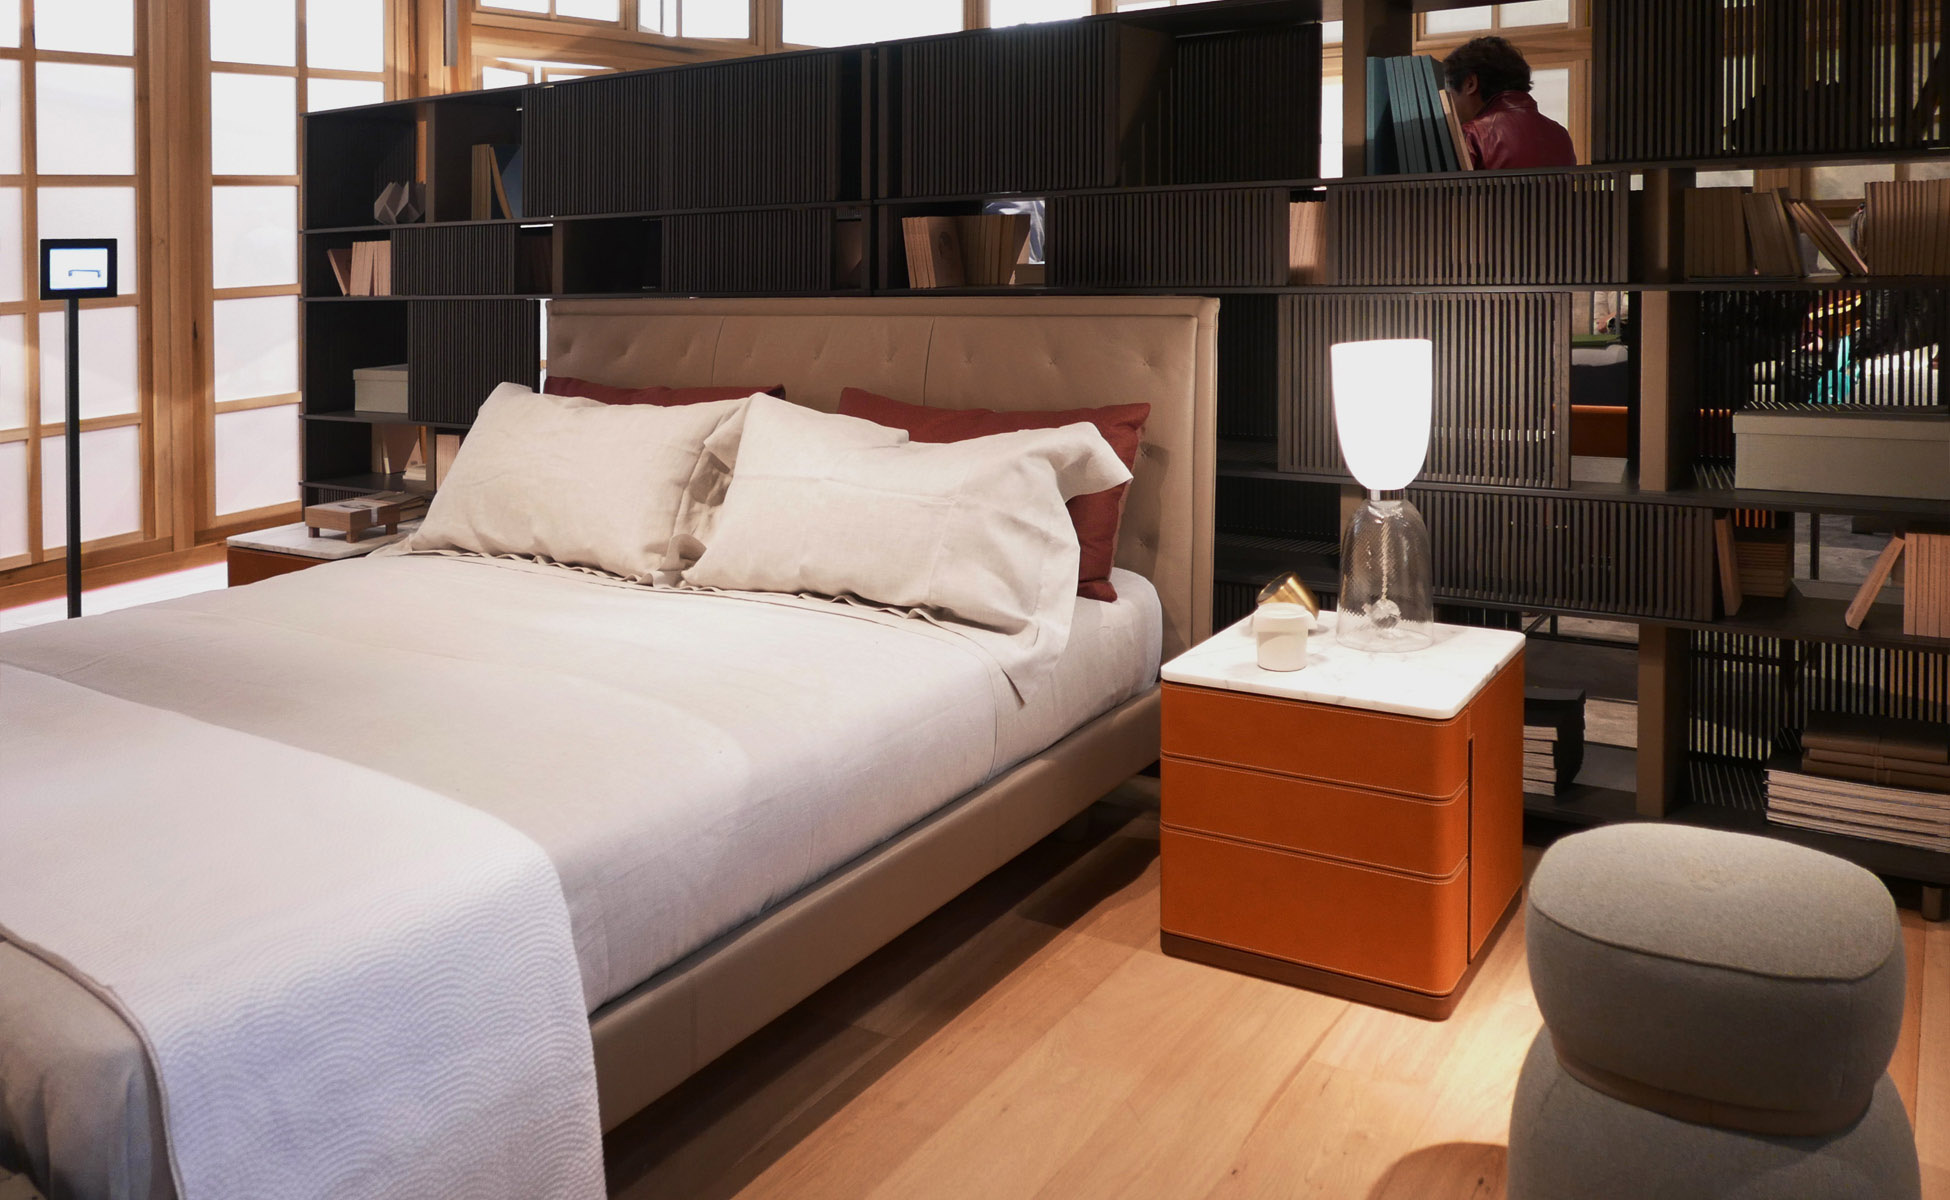 01 poltrona frau cupe` bed by steidten+ in berlin